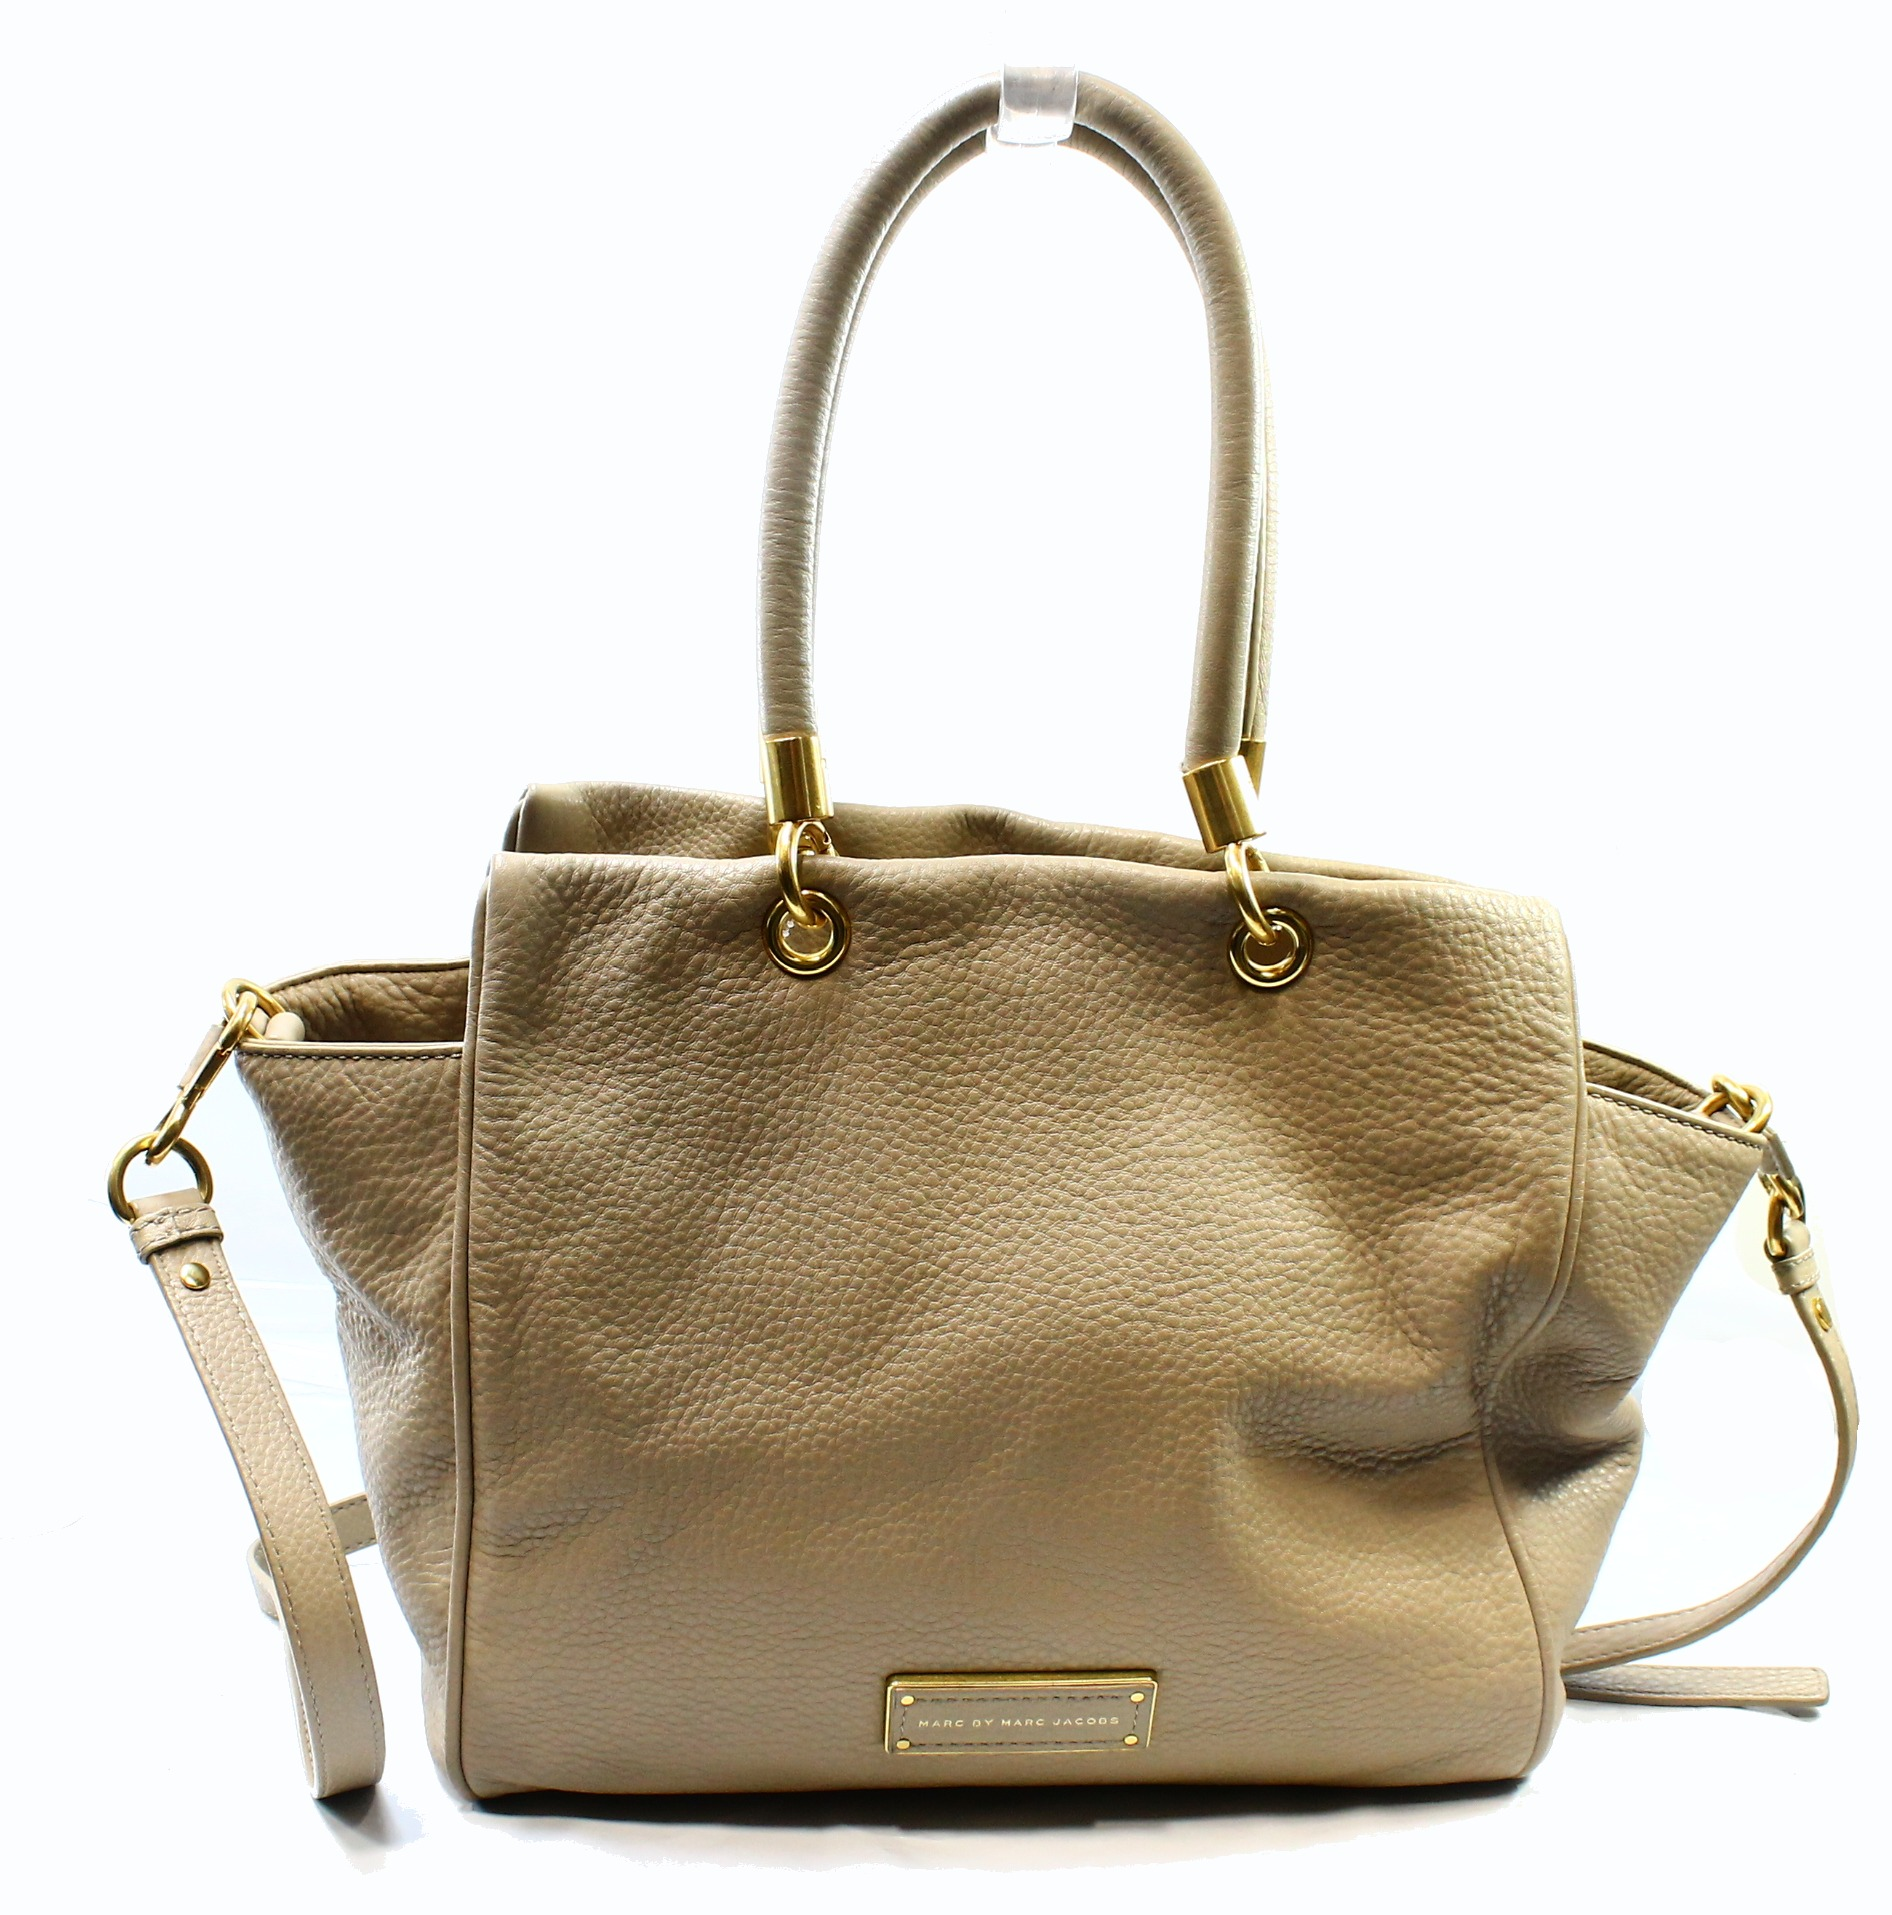 Marc By Marc Jacobs NEW Beige Gold Leather Bentley Satchel